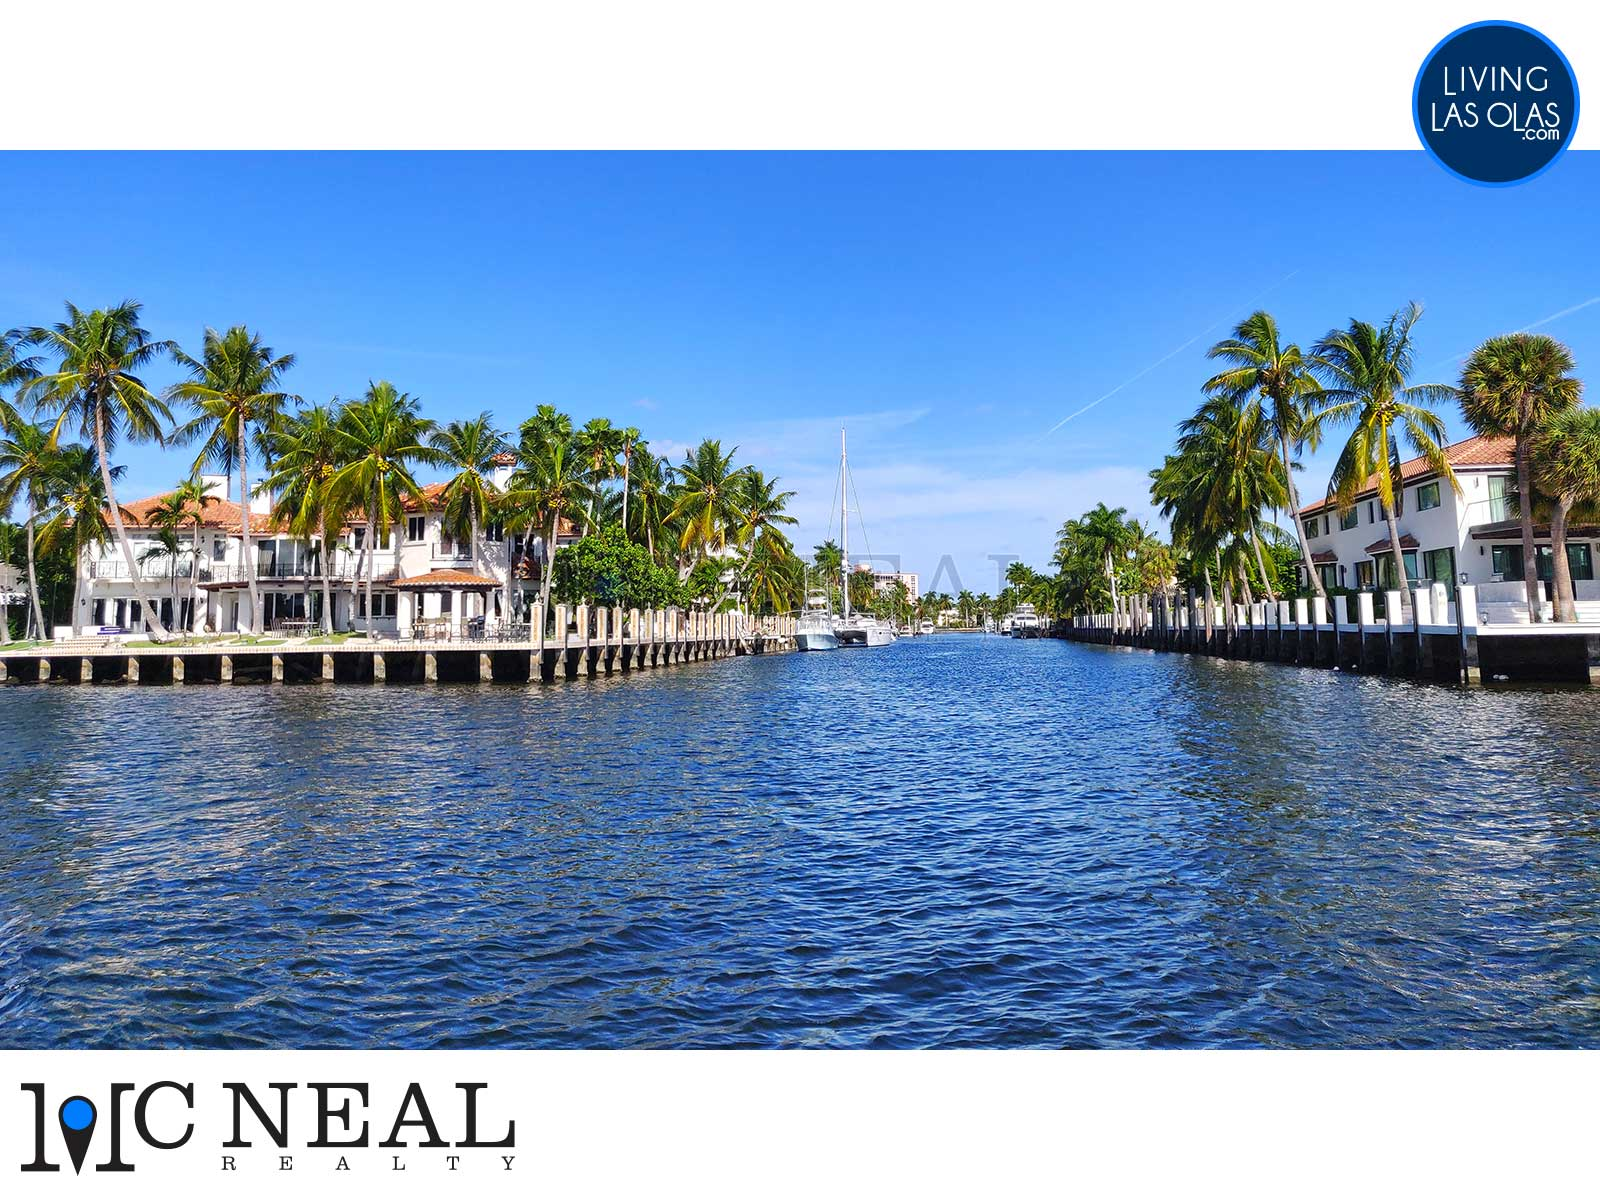 Las Olas Isles Homes Real Estate 07